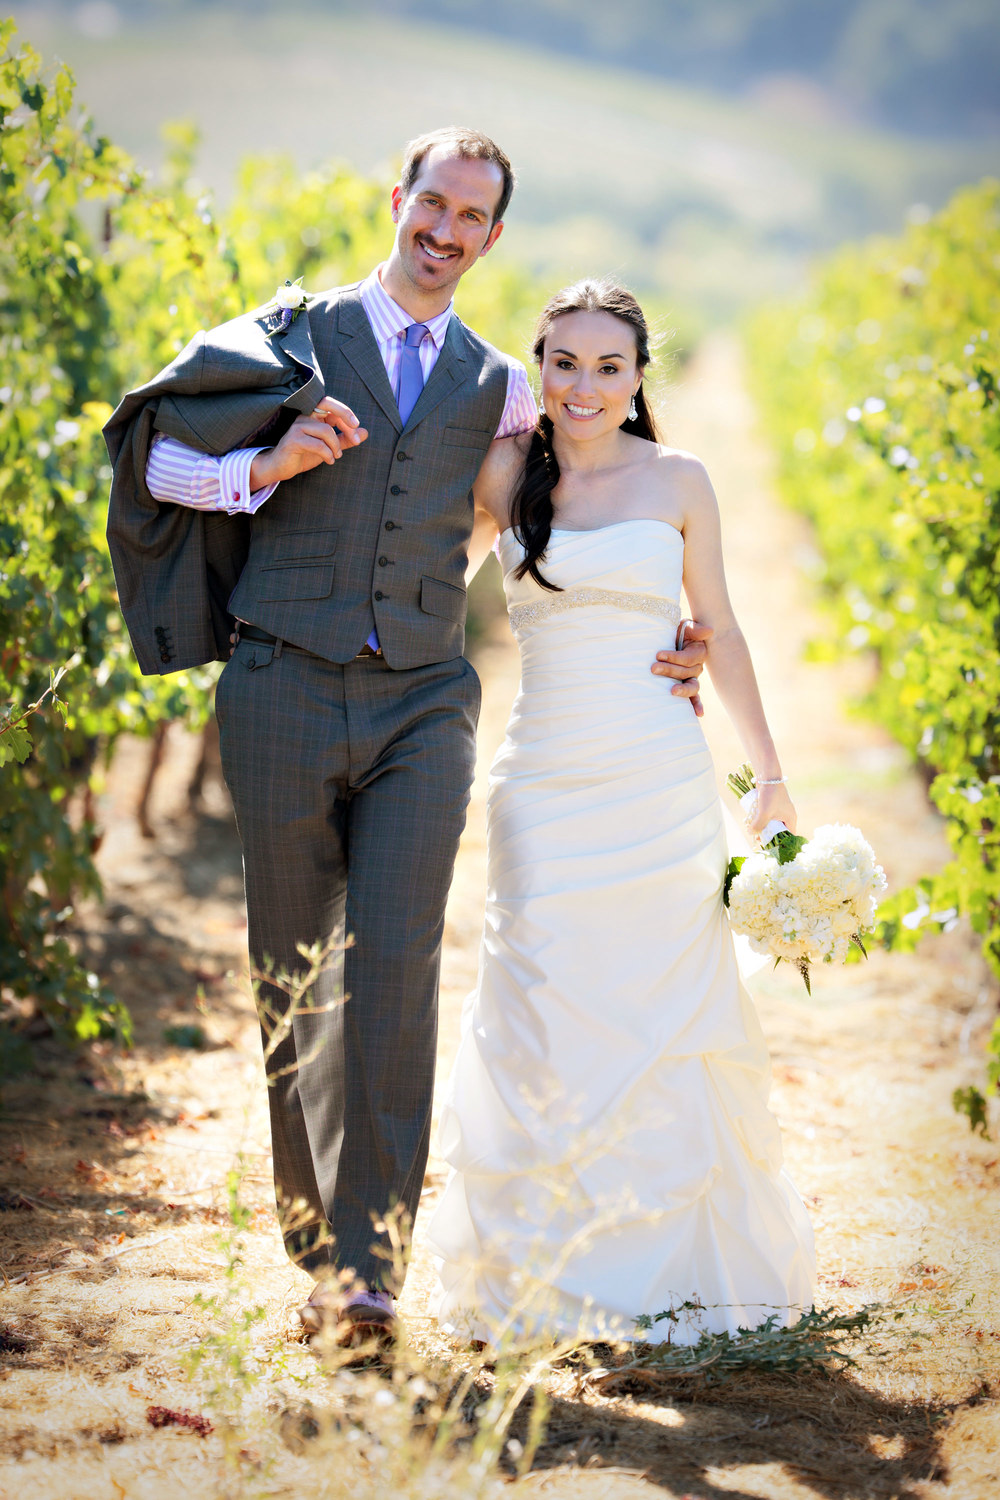 Brian & Perla stop at a vineyard for some portraits before heading to their reception.